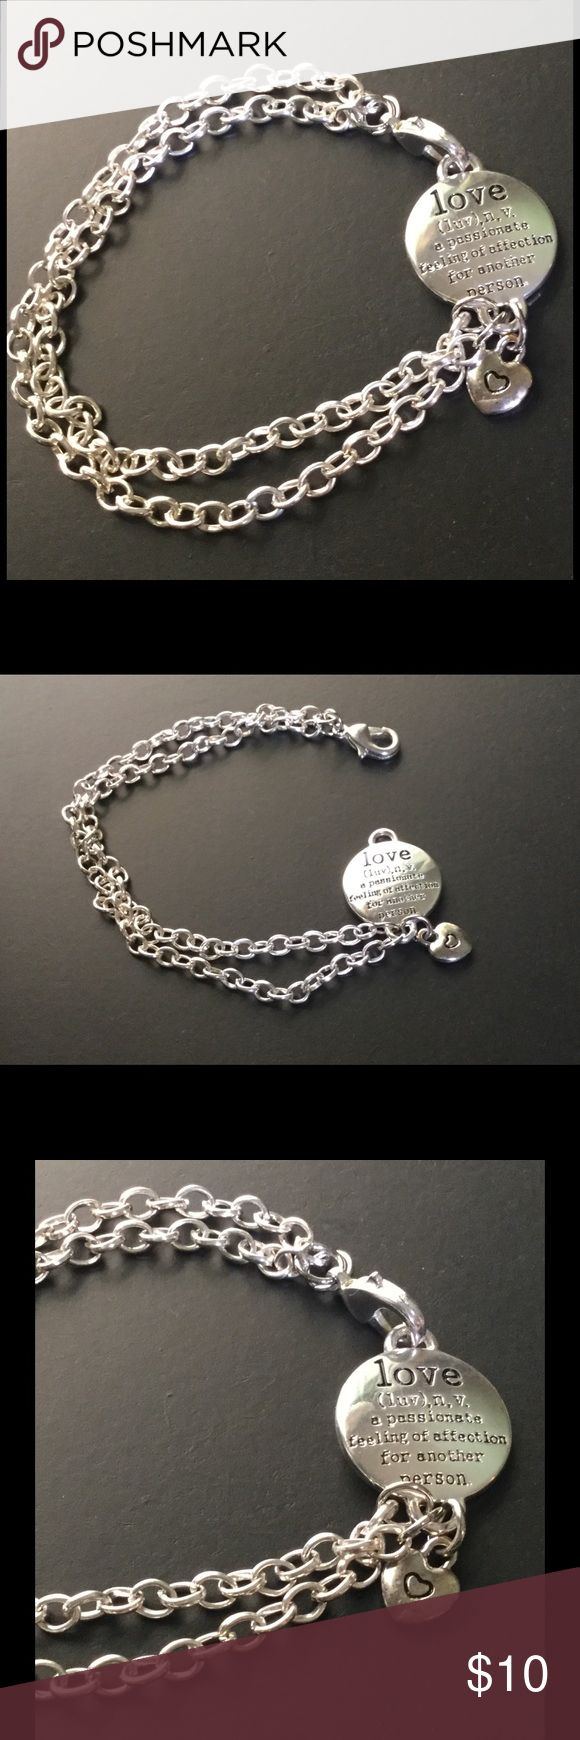 Bracelet with Love charm The meaning of Love charm makes this bracelet special...double row silver filled bracelet with small a small heart charm attached. handmade Jewelry Bracelets